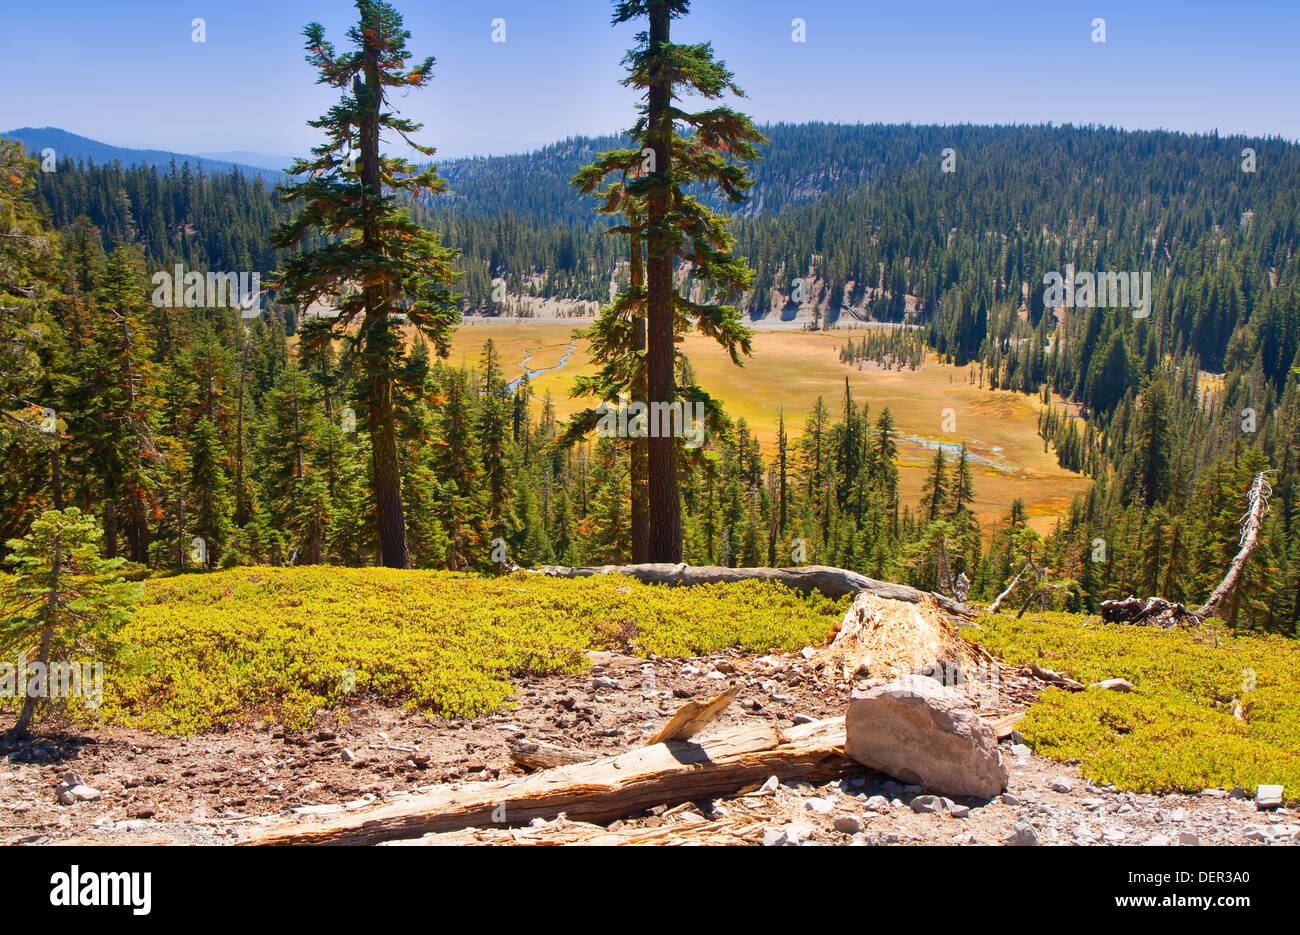 This image of Mount Lassen National Park shows beautiful hills and a valley adorned with greenery. - Stock Image